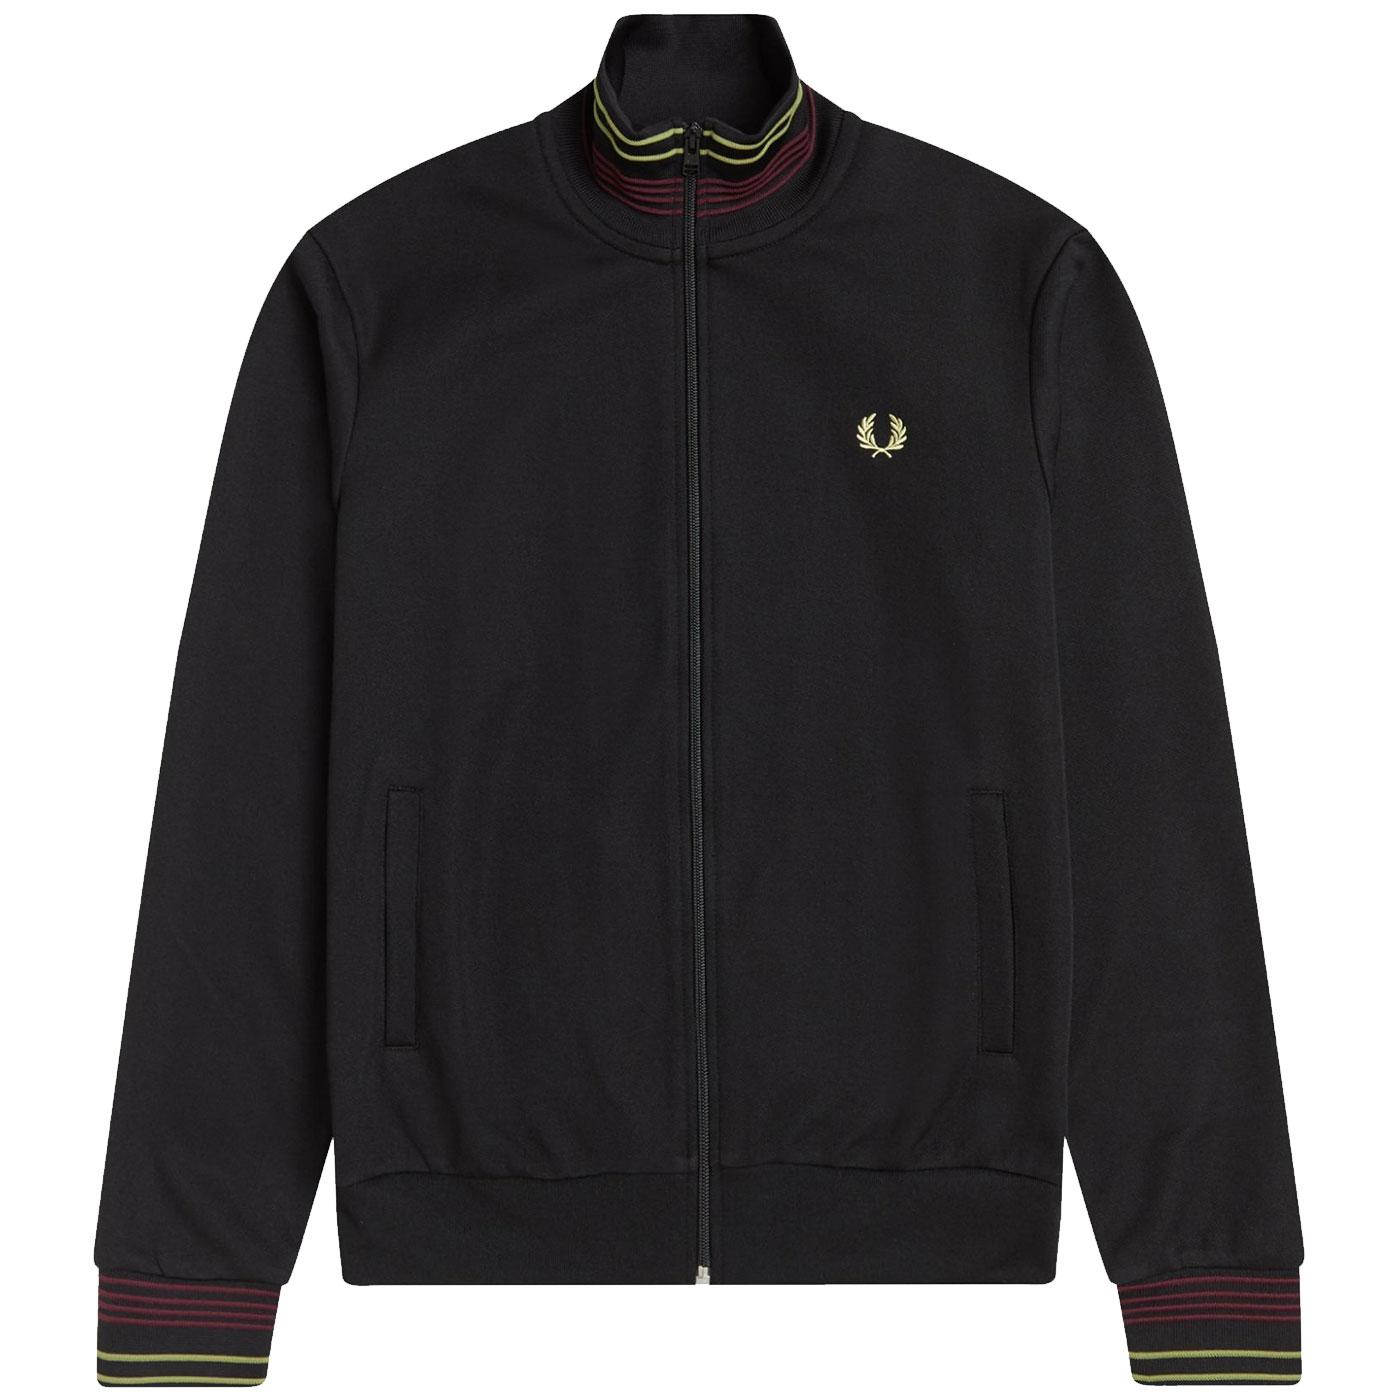 FRED PERRY Retro Lightweight Pique Track Jacket B